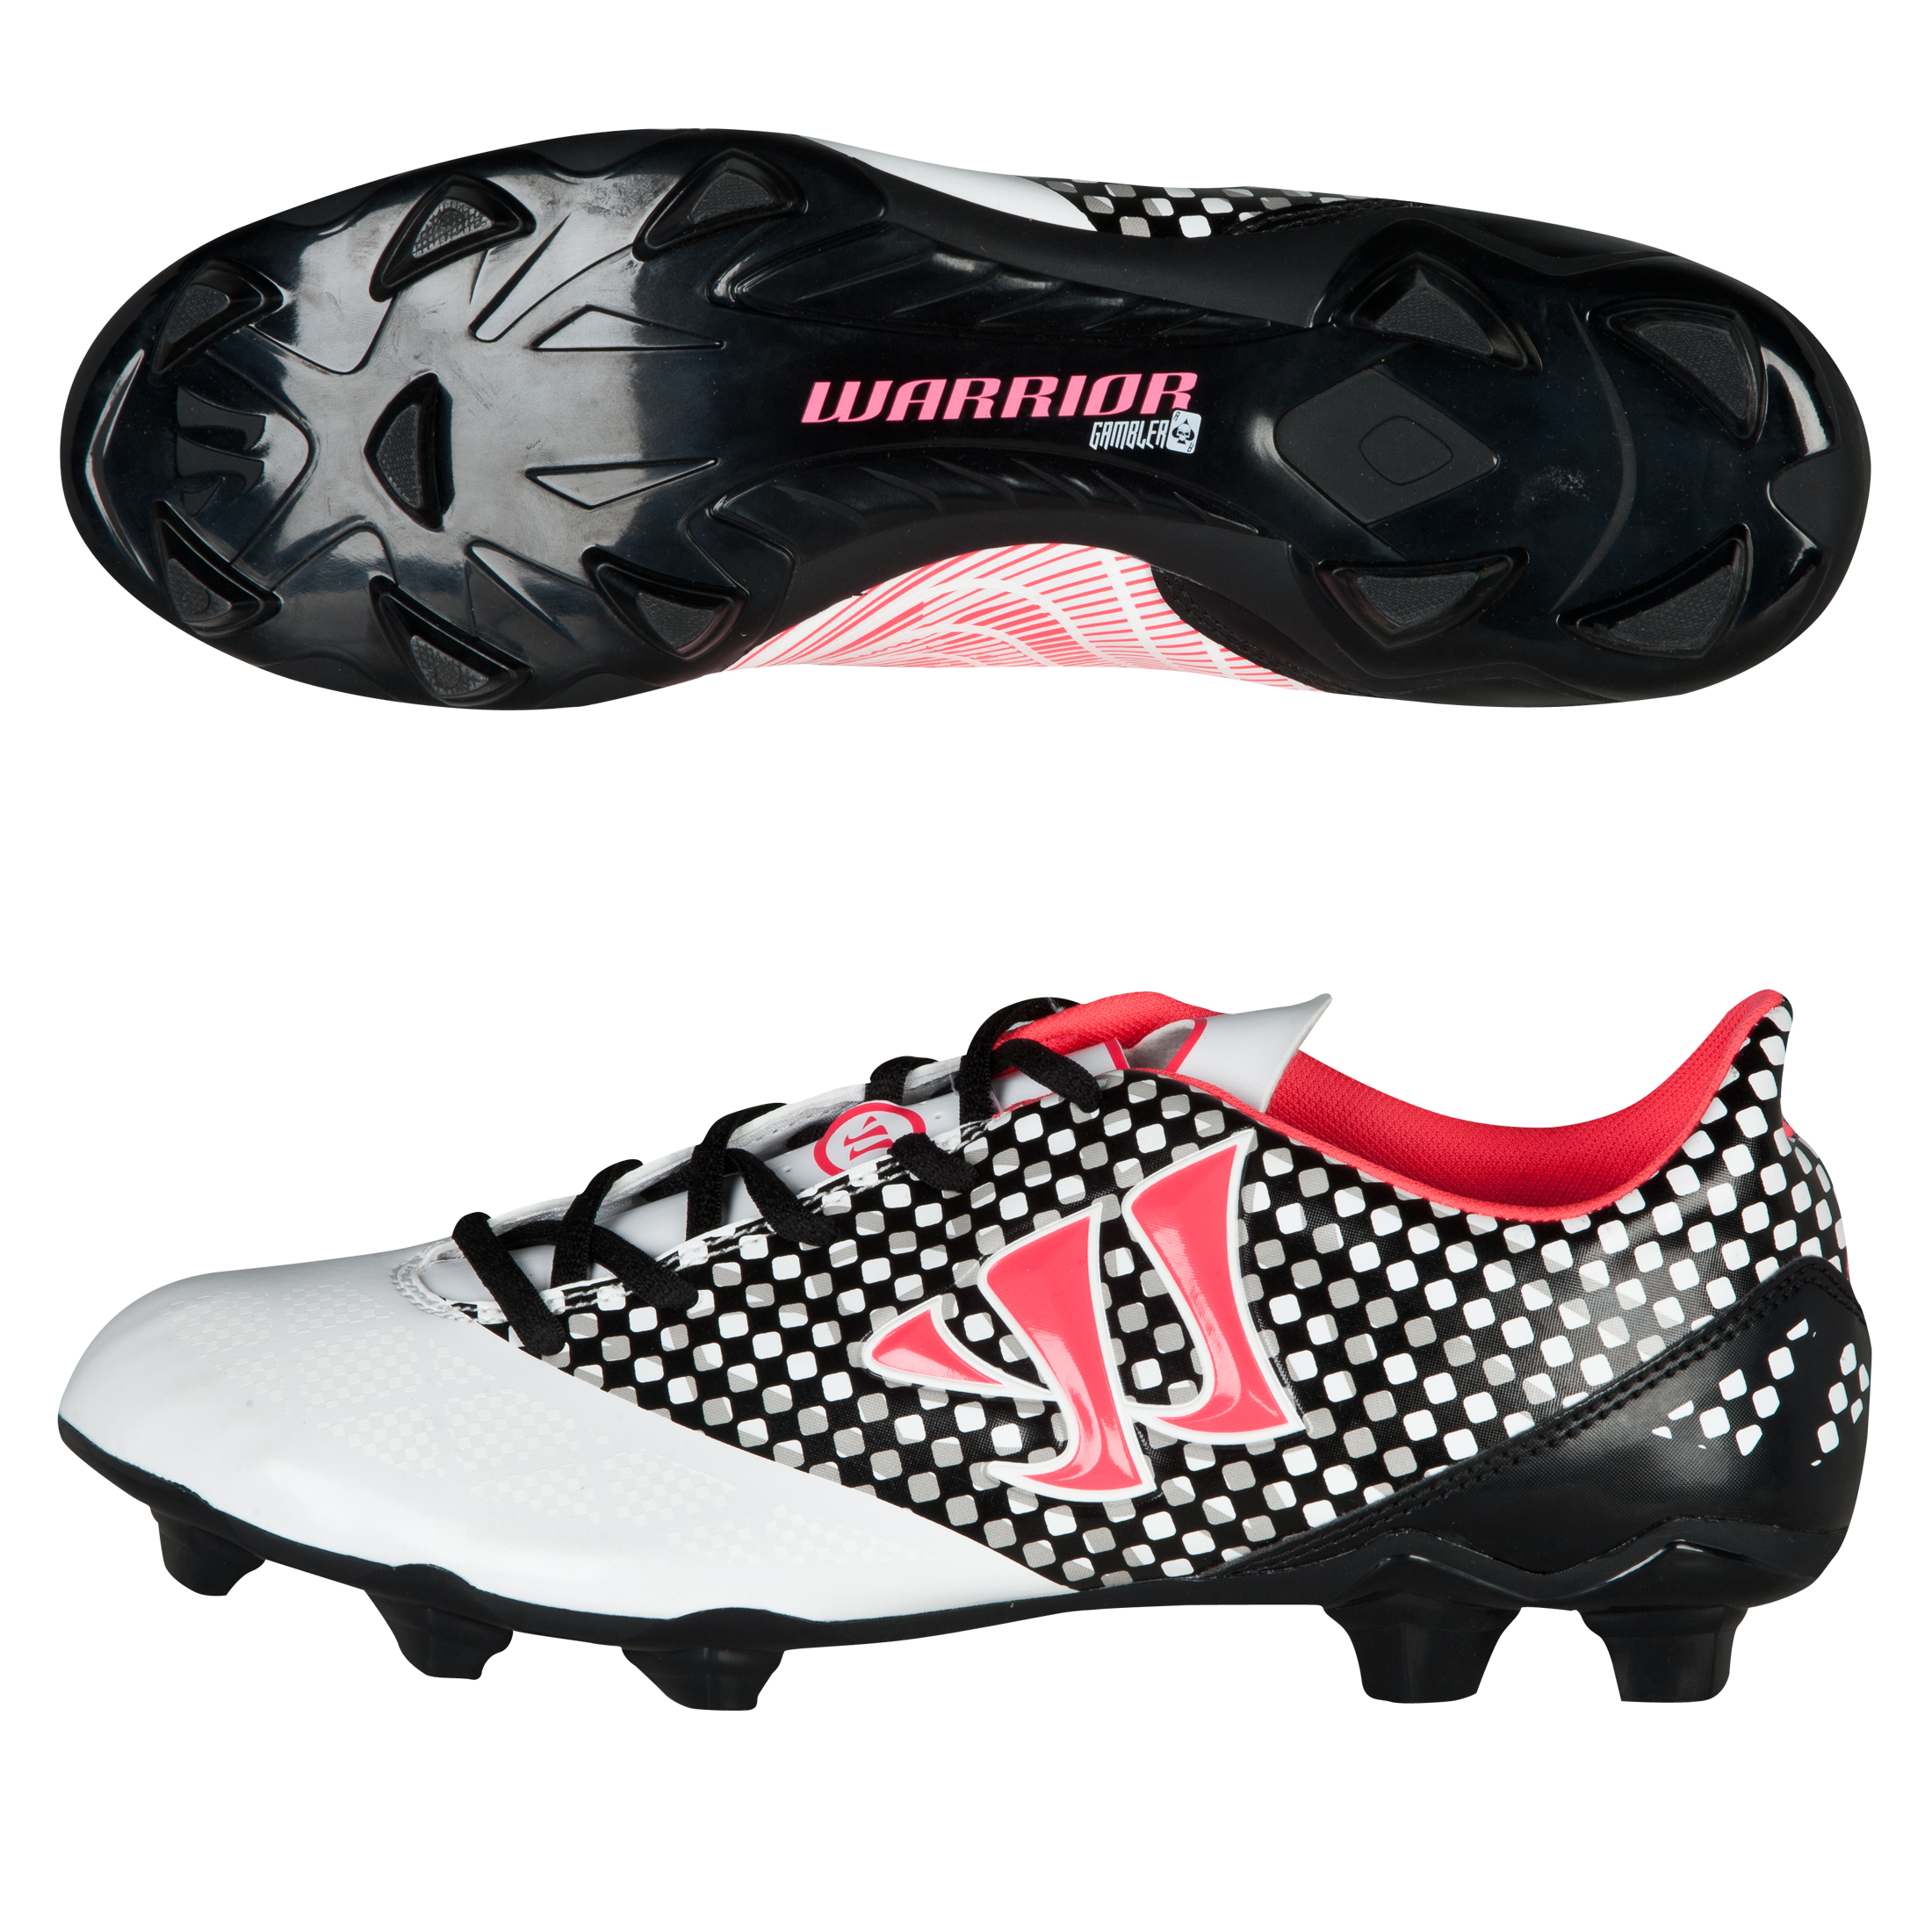 Warrior Sports Gambler Combat Firm Ground Football Boots-Wht/Blk/Pink White